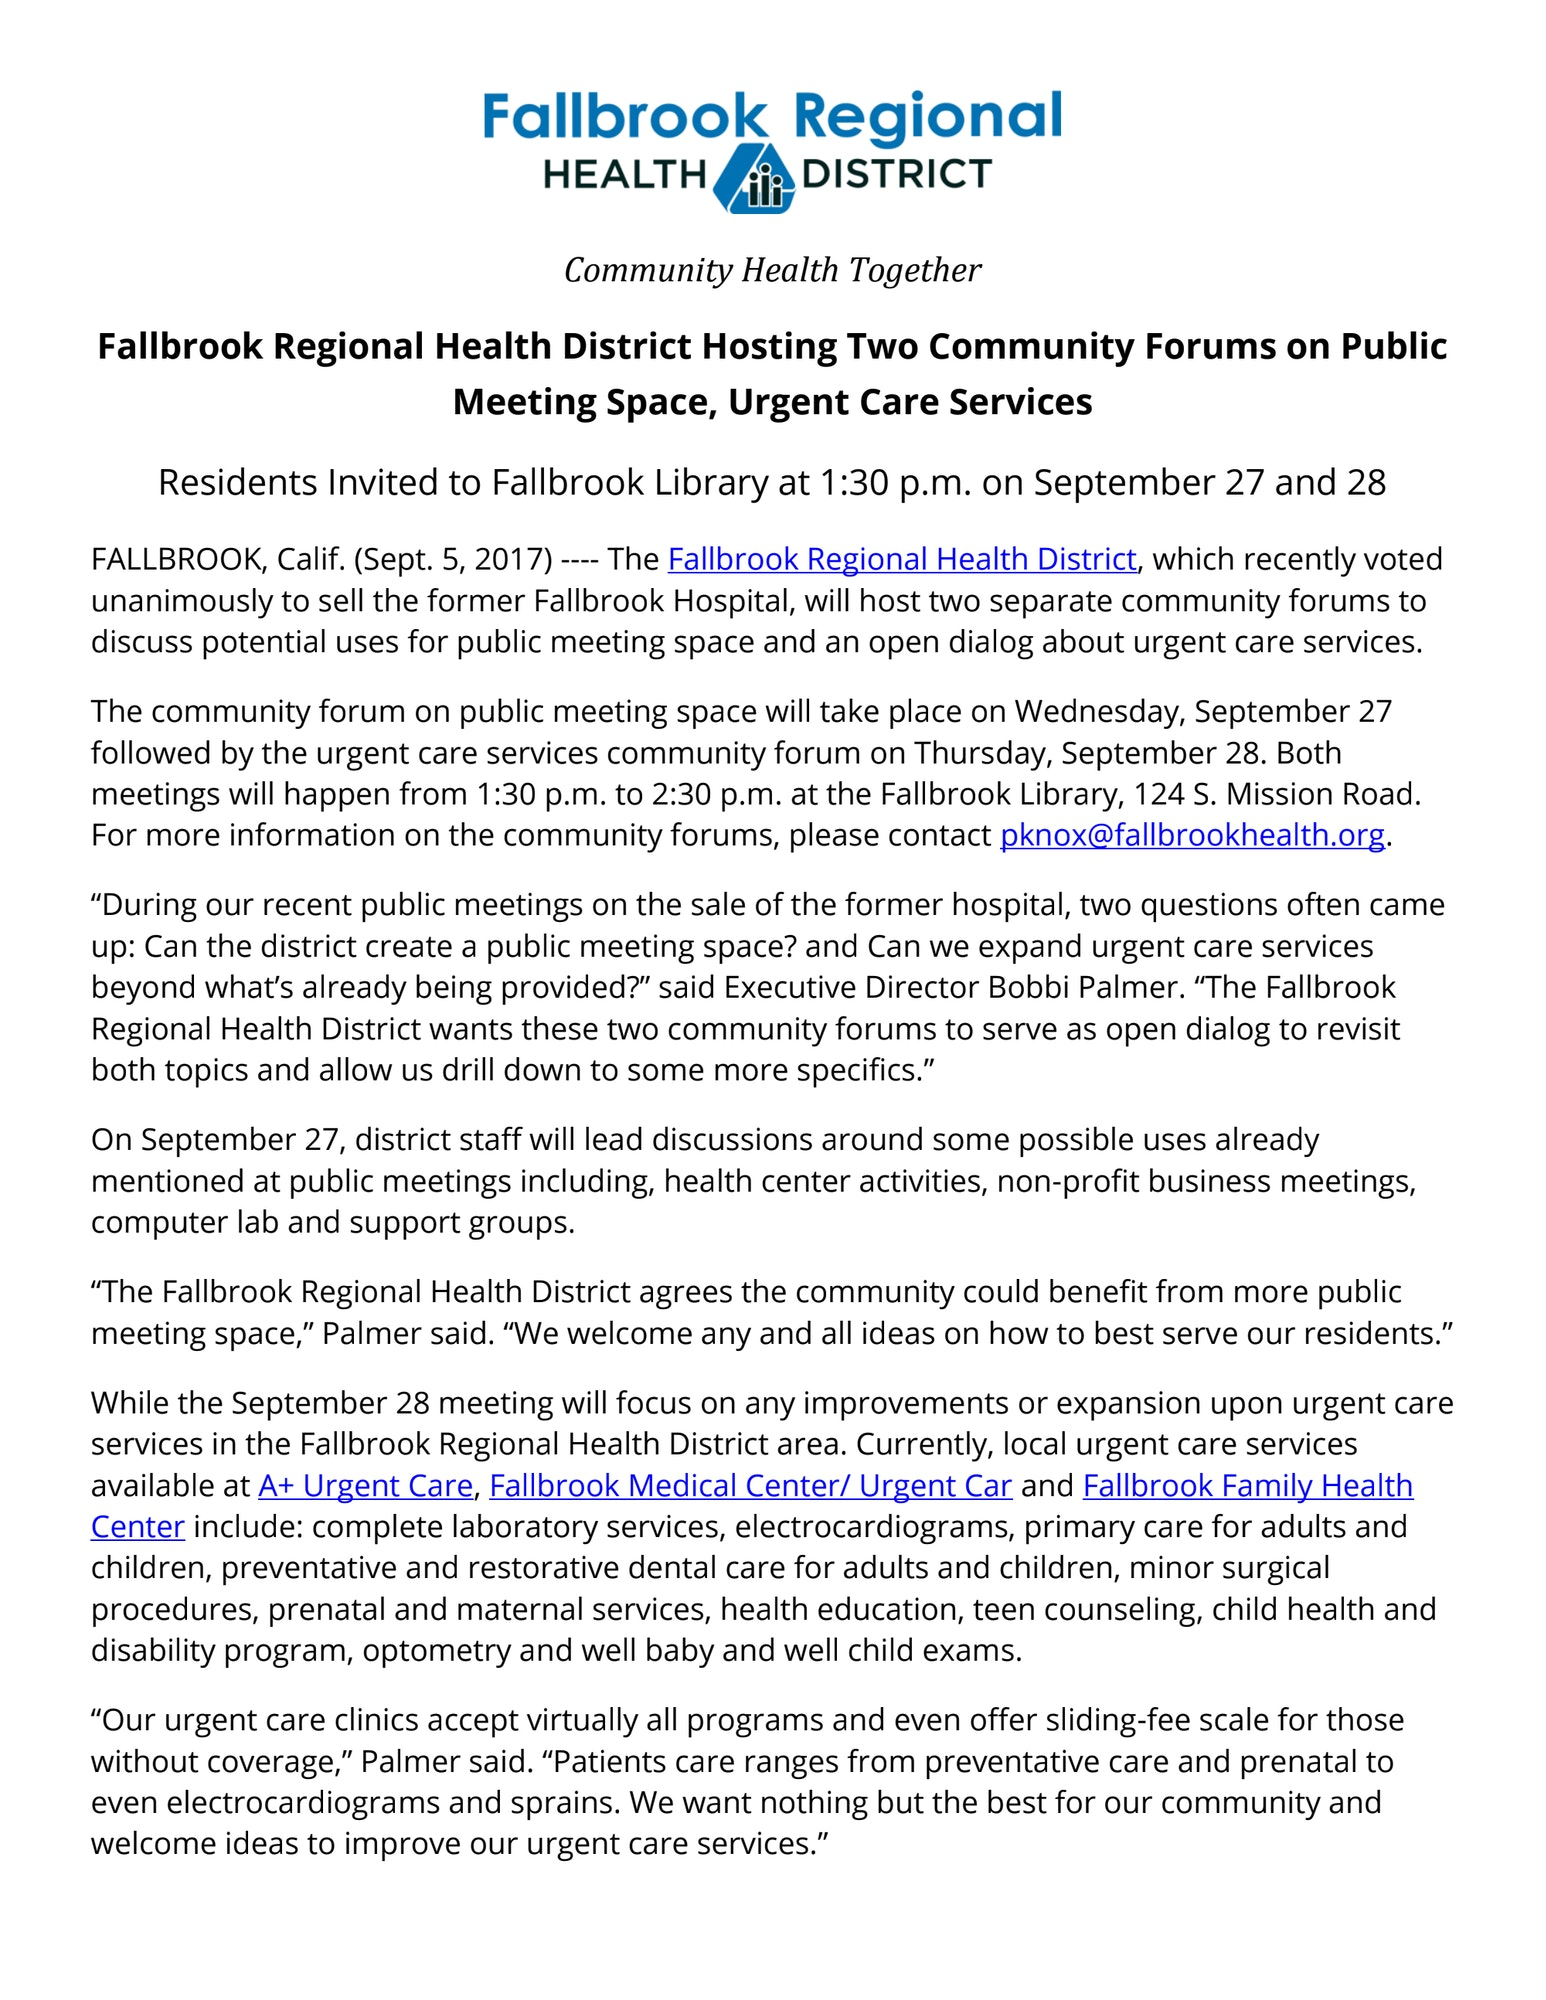 "Fallbrook Regional Health District Hosting Two Community Forums on Public Meeting Space, Urgent Care Services Residents Invited to Fallbrook Library at 1:30 p.m. on September 27 and 28 FALLBROOK, Calif. (Sept. 5, 2017) ---- The Fallbrook Regional Health District, which recently voted unanimously to sell the former Fallbrook Hospital, will host two separate community forums to discuss potential uses for public meeting space and an open dialog about urgent care services. The community forum on public meeting space will take place on Wednesday, September 27 followed by the urgent care services community forum on Thursday, September 28. Both meetings will happen from 1:30 p.m. to 2:30 p.m. at the Fallbrook Library, 124 S. Mission Road. For more information on the community forums, please contact pknox@fallbrookhealth.org. ""During our recent public meetings on the sale of the former hospital, two questions often came up: Can the district create a public meeting space? and Can we expand urgent care services beyond what's already being provided?"" said Executive Director Bobbi Palmer. ""The Fallbrook Regional Health District wants these two community forums to serve as open dialog to revisit both topics and allow us drill down to some more specifics."" On September 27, district staff will lead discussions around some possible uses already mentioned at public meetings including, health center activities, non-profit business meetings, computer lab and support groups. ""The Fallbrook Regional Health District agrees the community could benefit from more public meeting space,"" Palmer said. ""We welcome any and all ideas on how to best serve our residents."" While the September 28 meeting will focus on any improvements or expansion upon urgent care services in the Fallbrook Regional Health District area. Currently, local urgent care services available at A+ Urgent Care, Fallbrook Medical Center/ Urgent Car and Fallbrook Family Health Center include: complete laboratory services, electrocardiograms, primary care for adults and children, preventative and restorative dental care for adults and children, minor surgical procedures, prenatal and maternal services, health education, teen counseling, child health and disability program, optometry and well baby and well child exams. ""Our urgent care clinics accept virtually all programs and even offer sliding-fee scale for those without coverage,"" Palmer said. ""Patients care ranges from preventative care and prenatal to even electrocardiograms and sprains. We want nothing but the best for our community and welcome ideas to improve our urgent care services."""